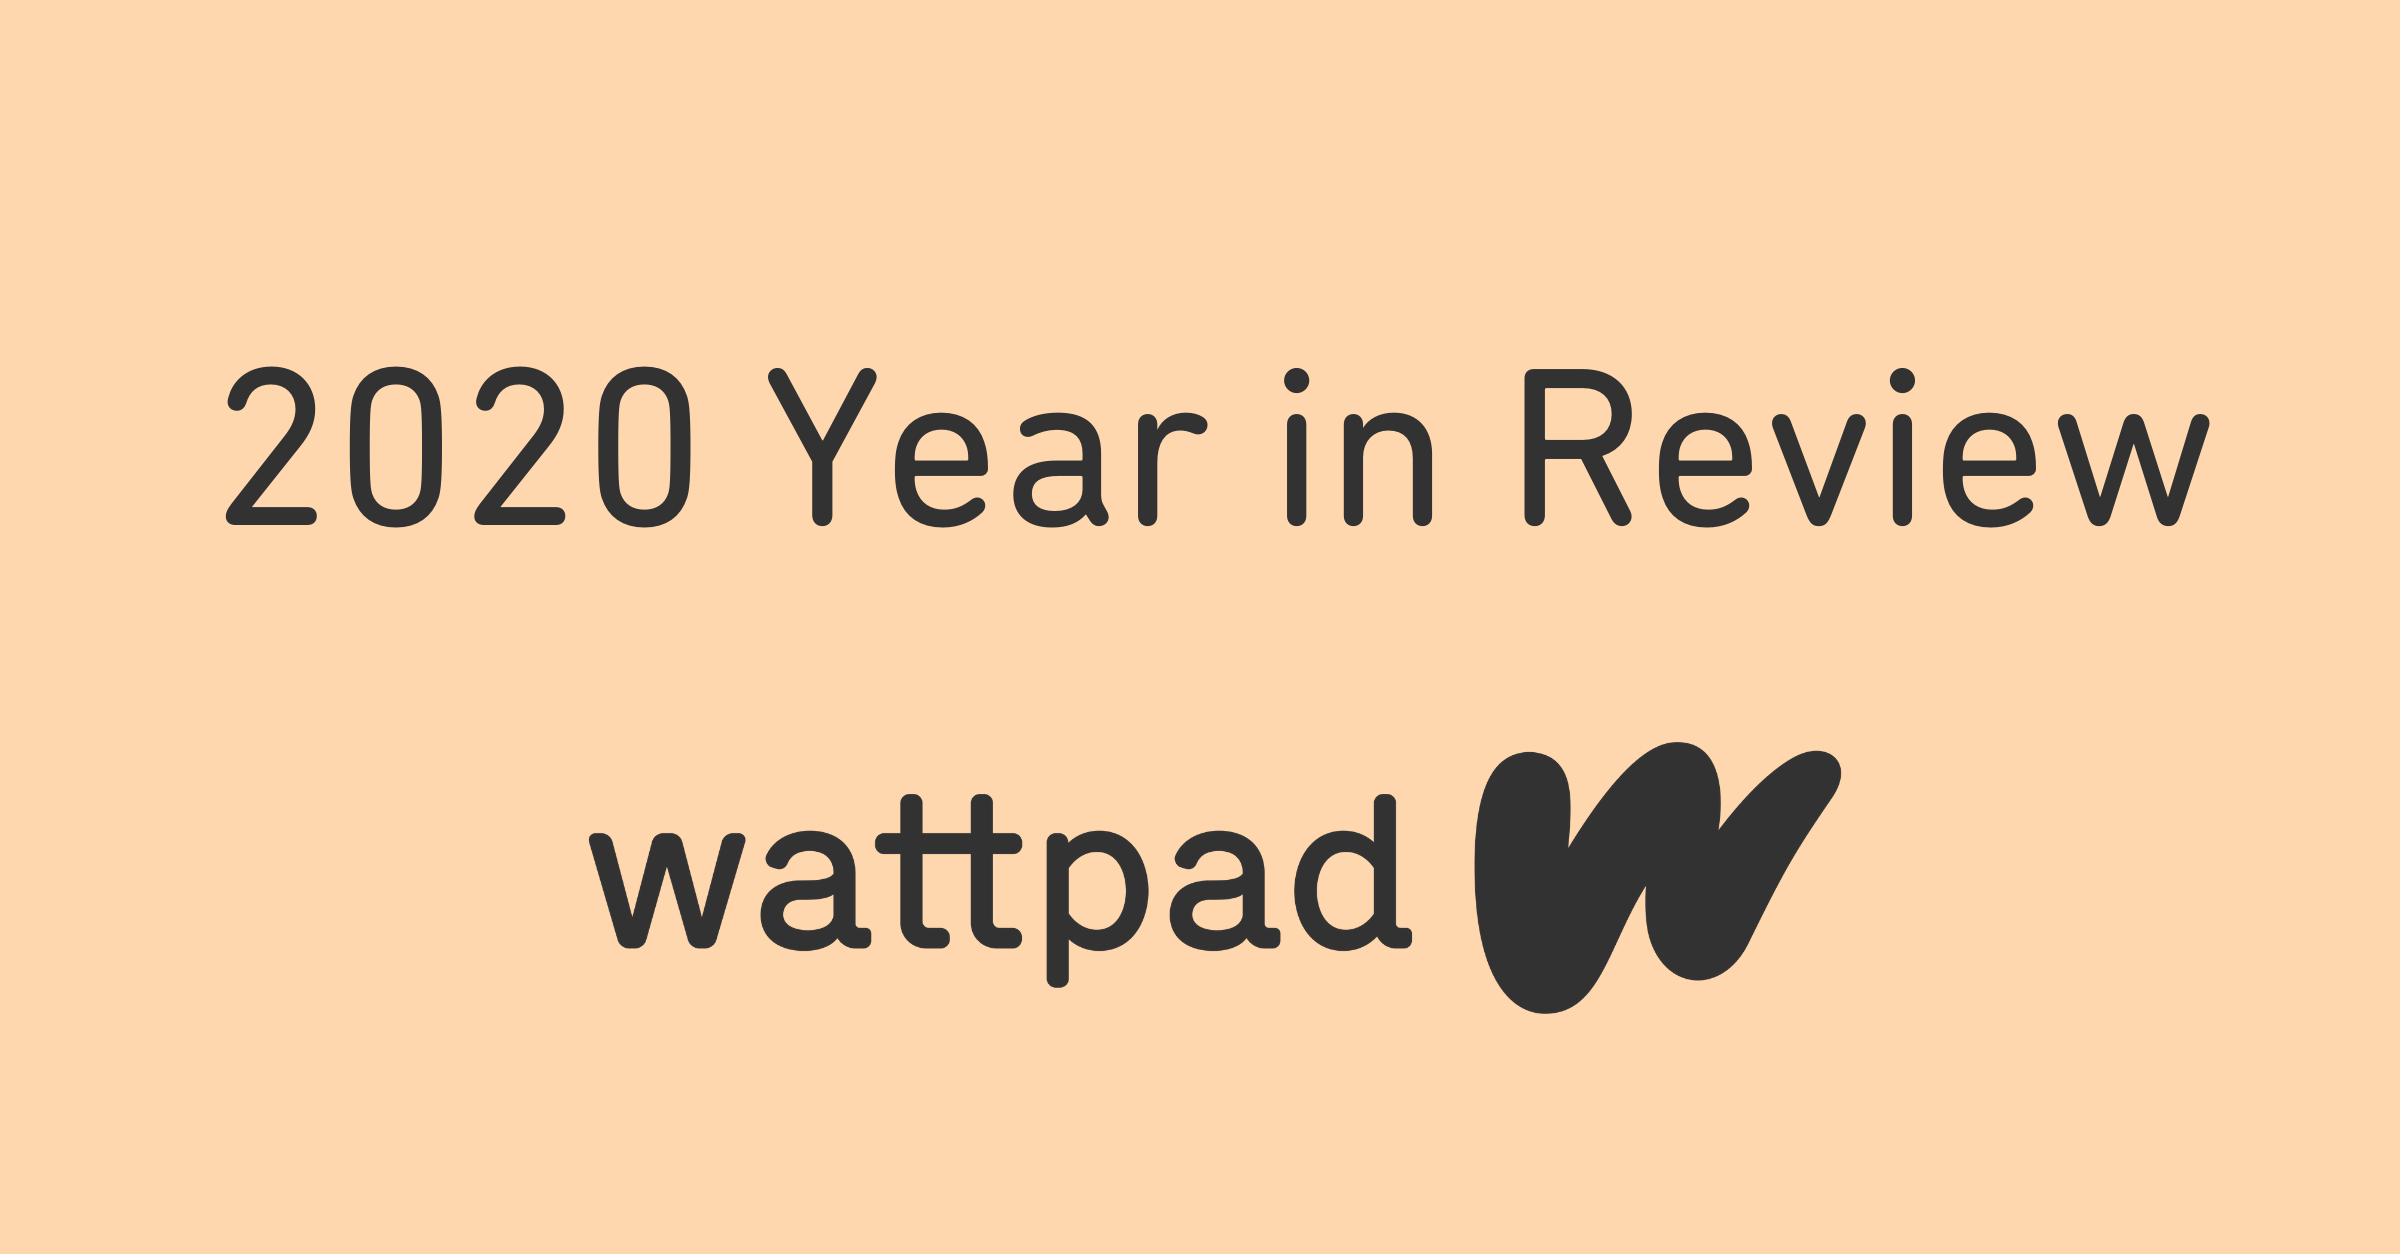 Wattpad 2020 Year in Review